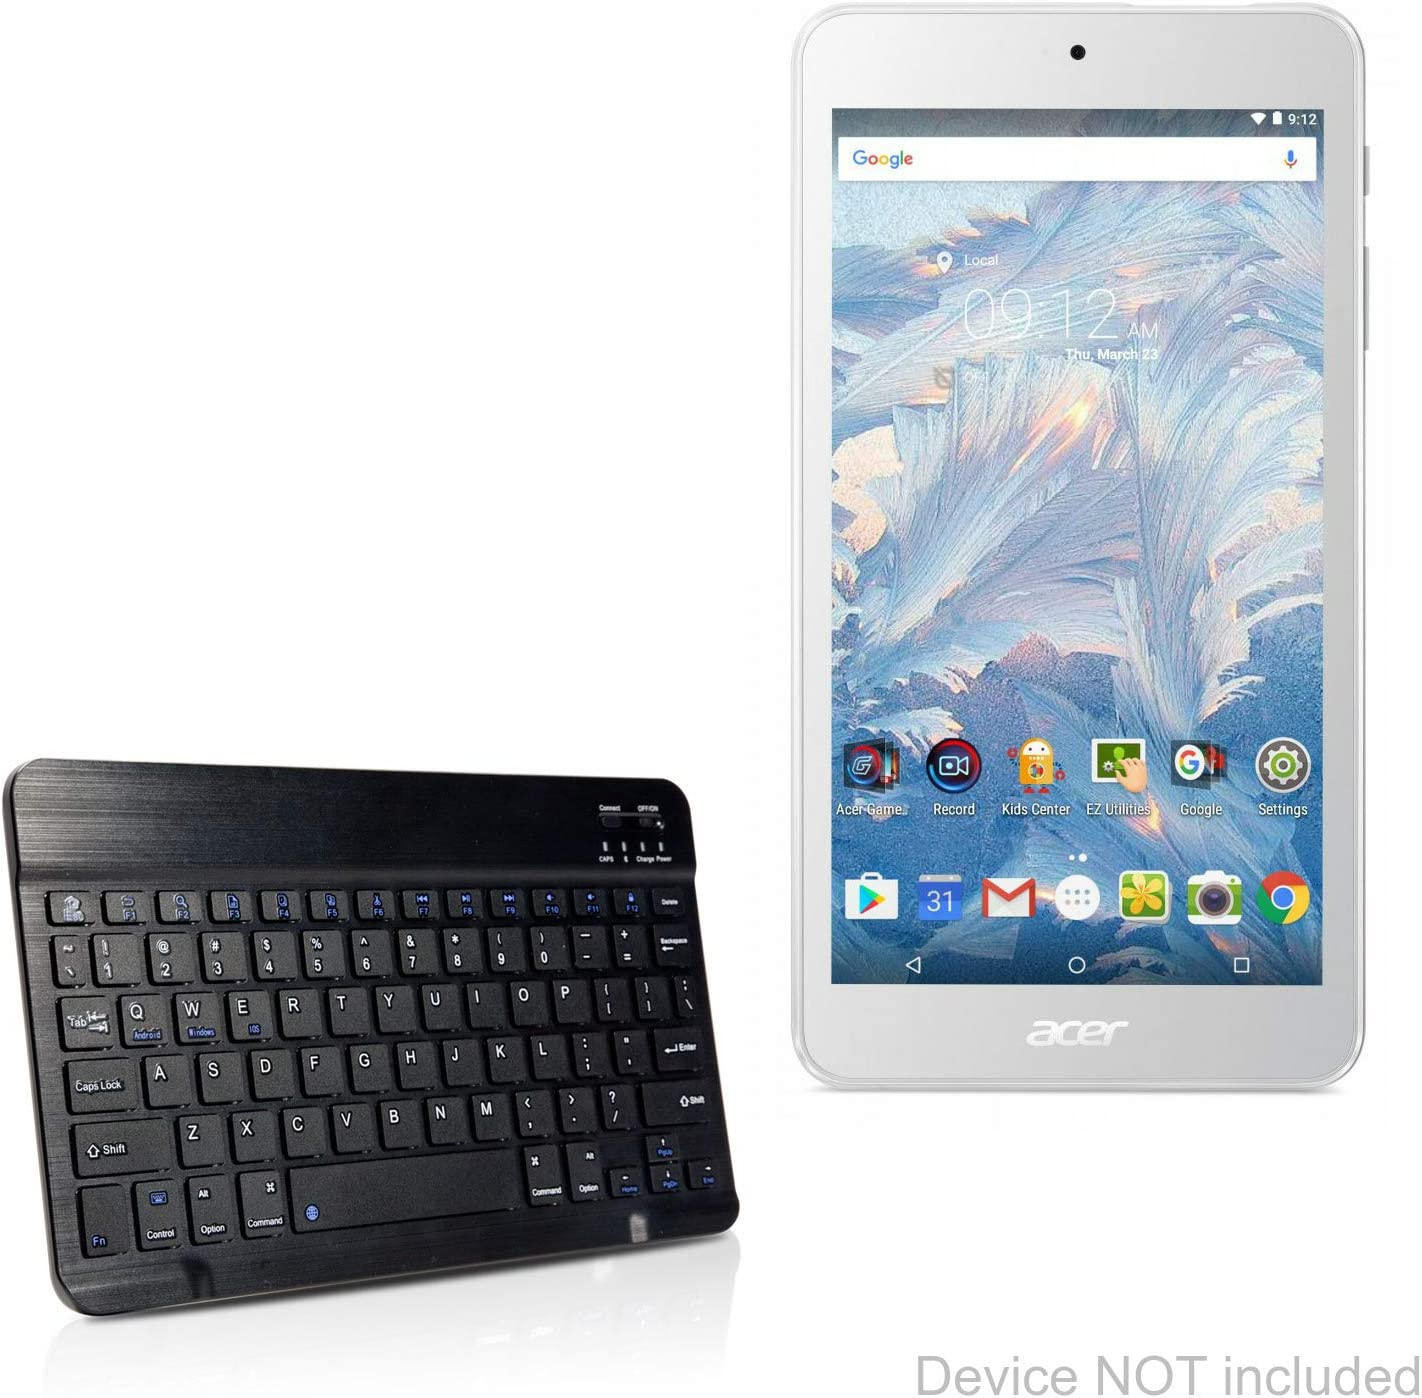 Acer Iconia One 8 B1-860 Keyboard, BoxWave [SlimKeys Bluetooth Keyboard] Portable Keyboard with Integrated Commands for Acer Iconia One 8 B1-860 - Jet Black